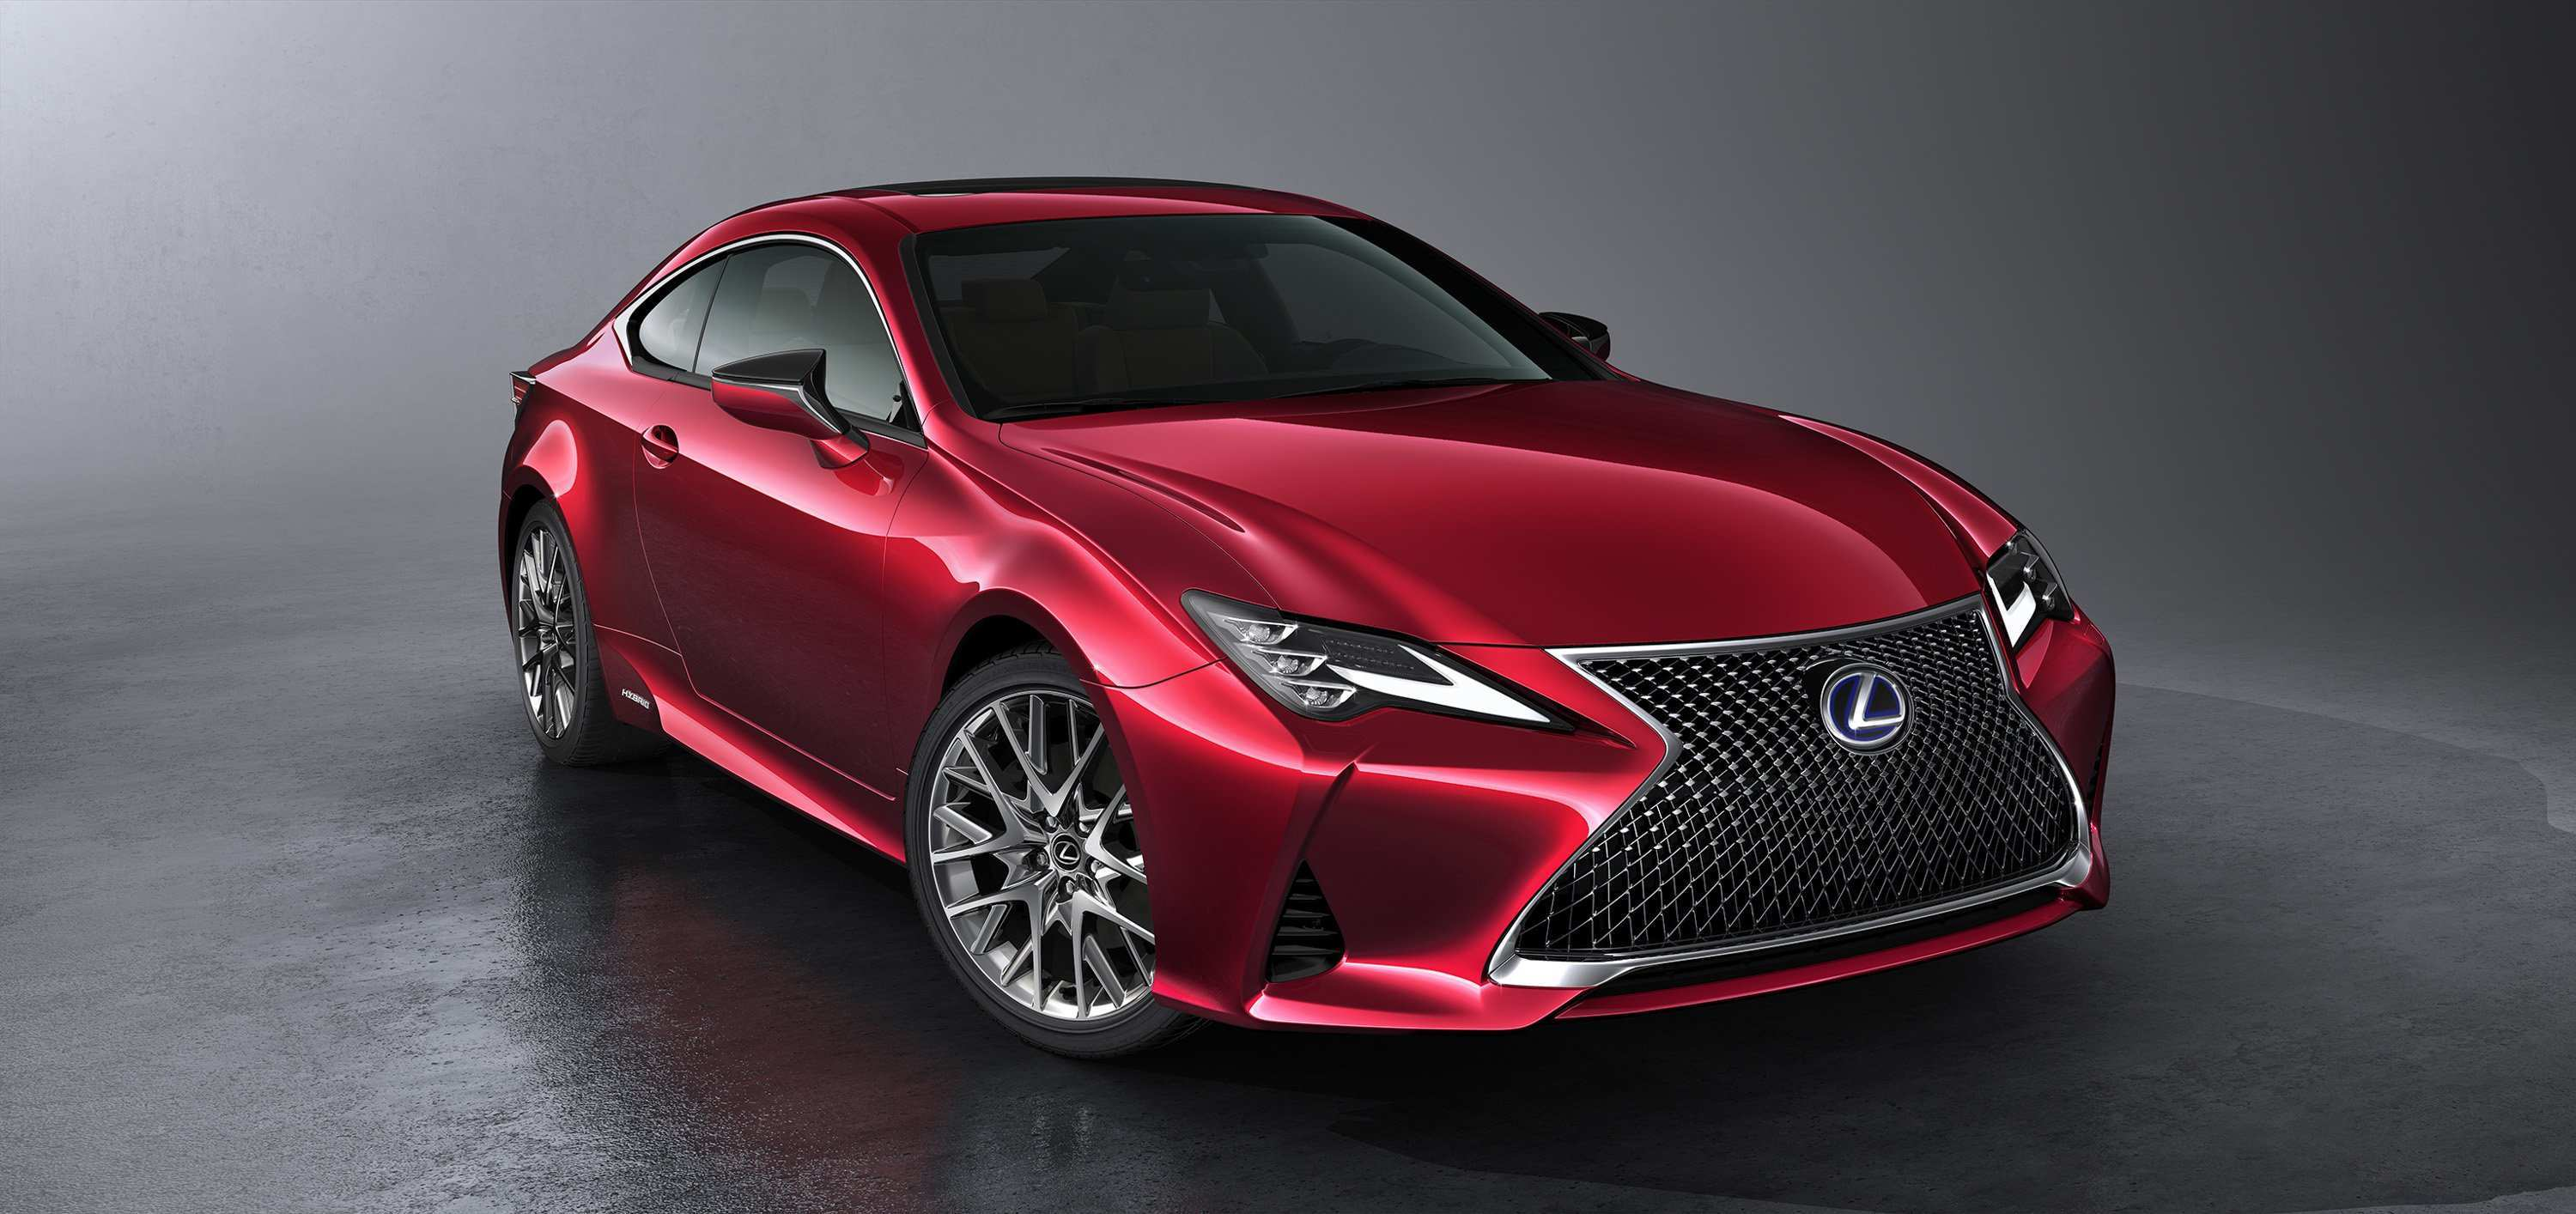 81 Concept of 2019 Lexus Coupe Specs and Review with 2019 Lexus Coupe